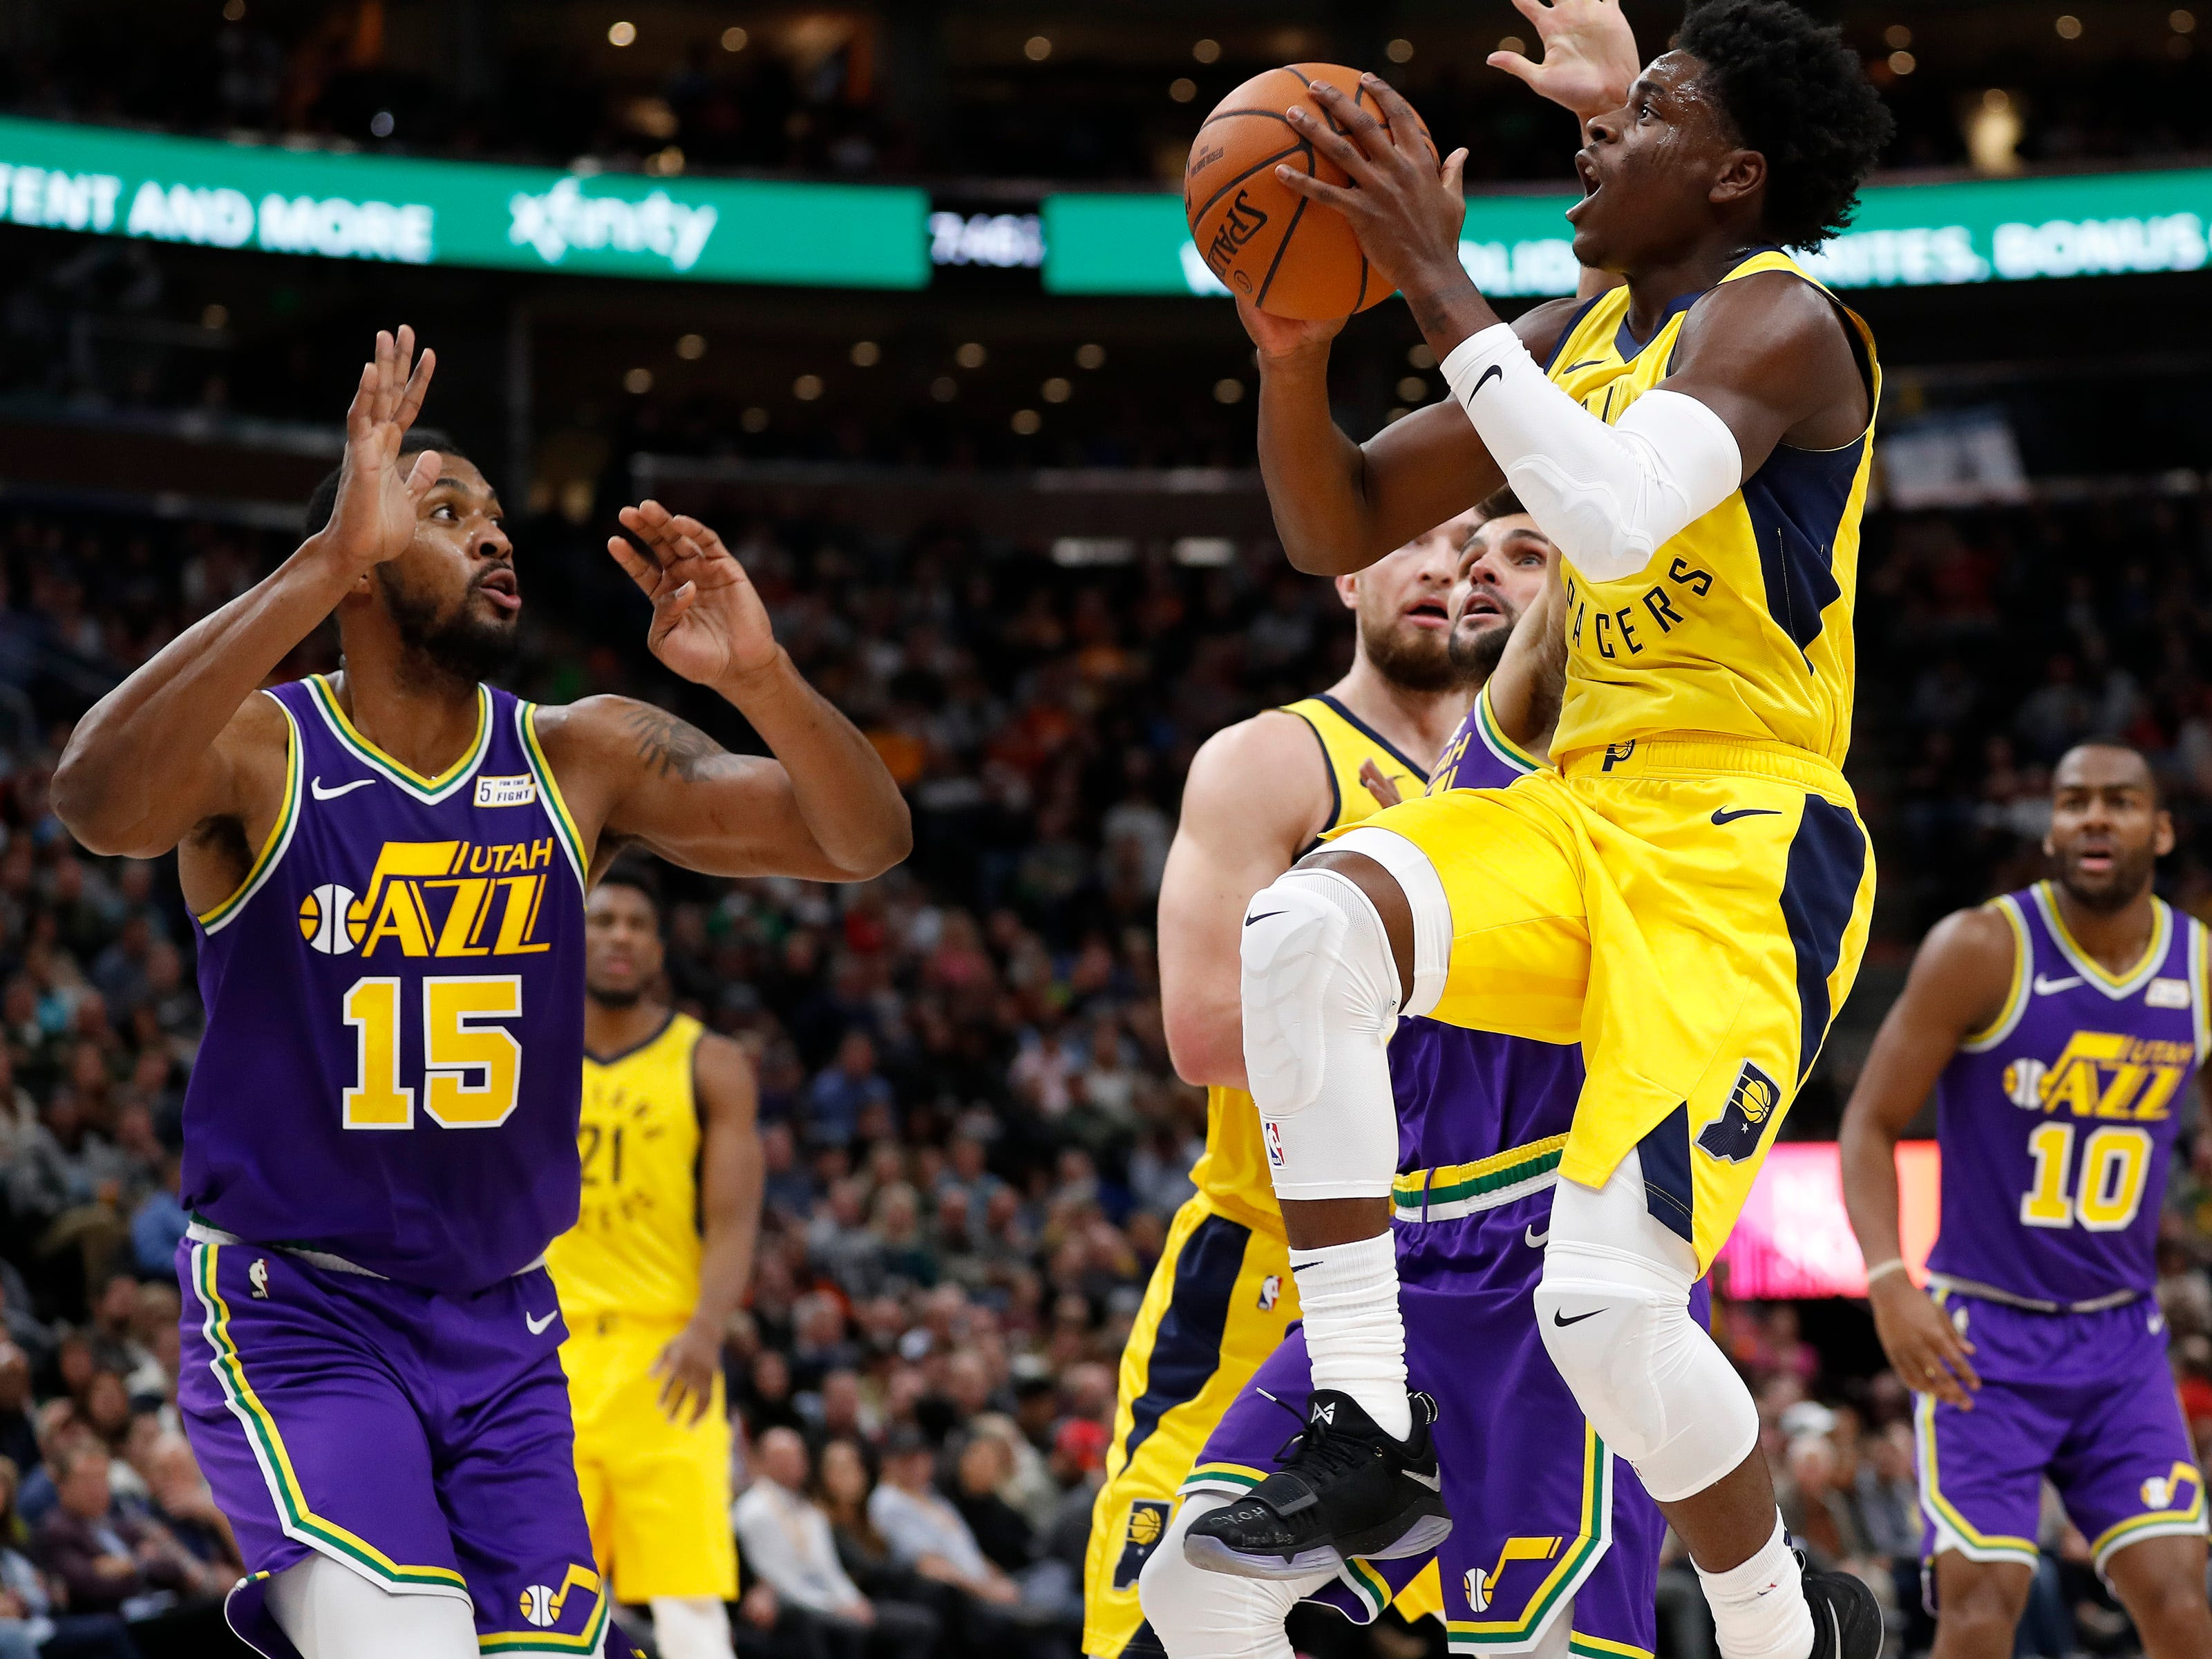 Nov 26, 2018; Salt Lake City, UT, USA; Indiana Pacers guard Aaron Holiday (3) drives to the hoop against Utah Jazz forward Derrick Favors (15) and guard Raul Neto (25) in the second quarter at Vivint Smart Home Arena.